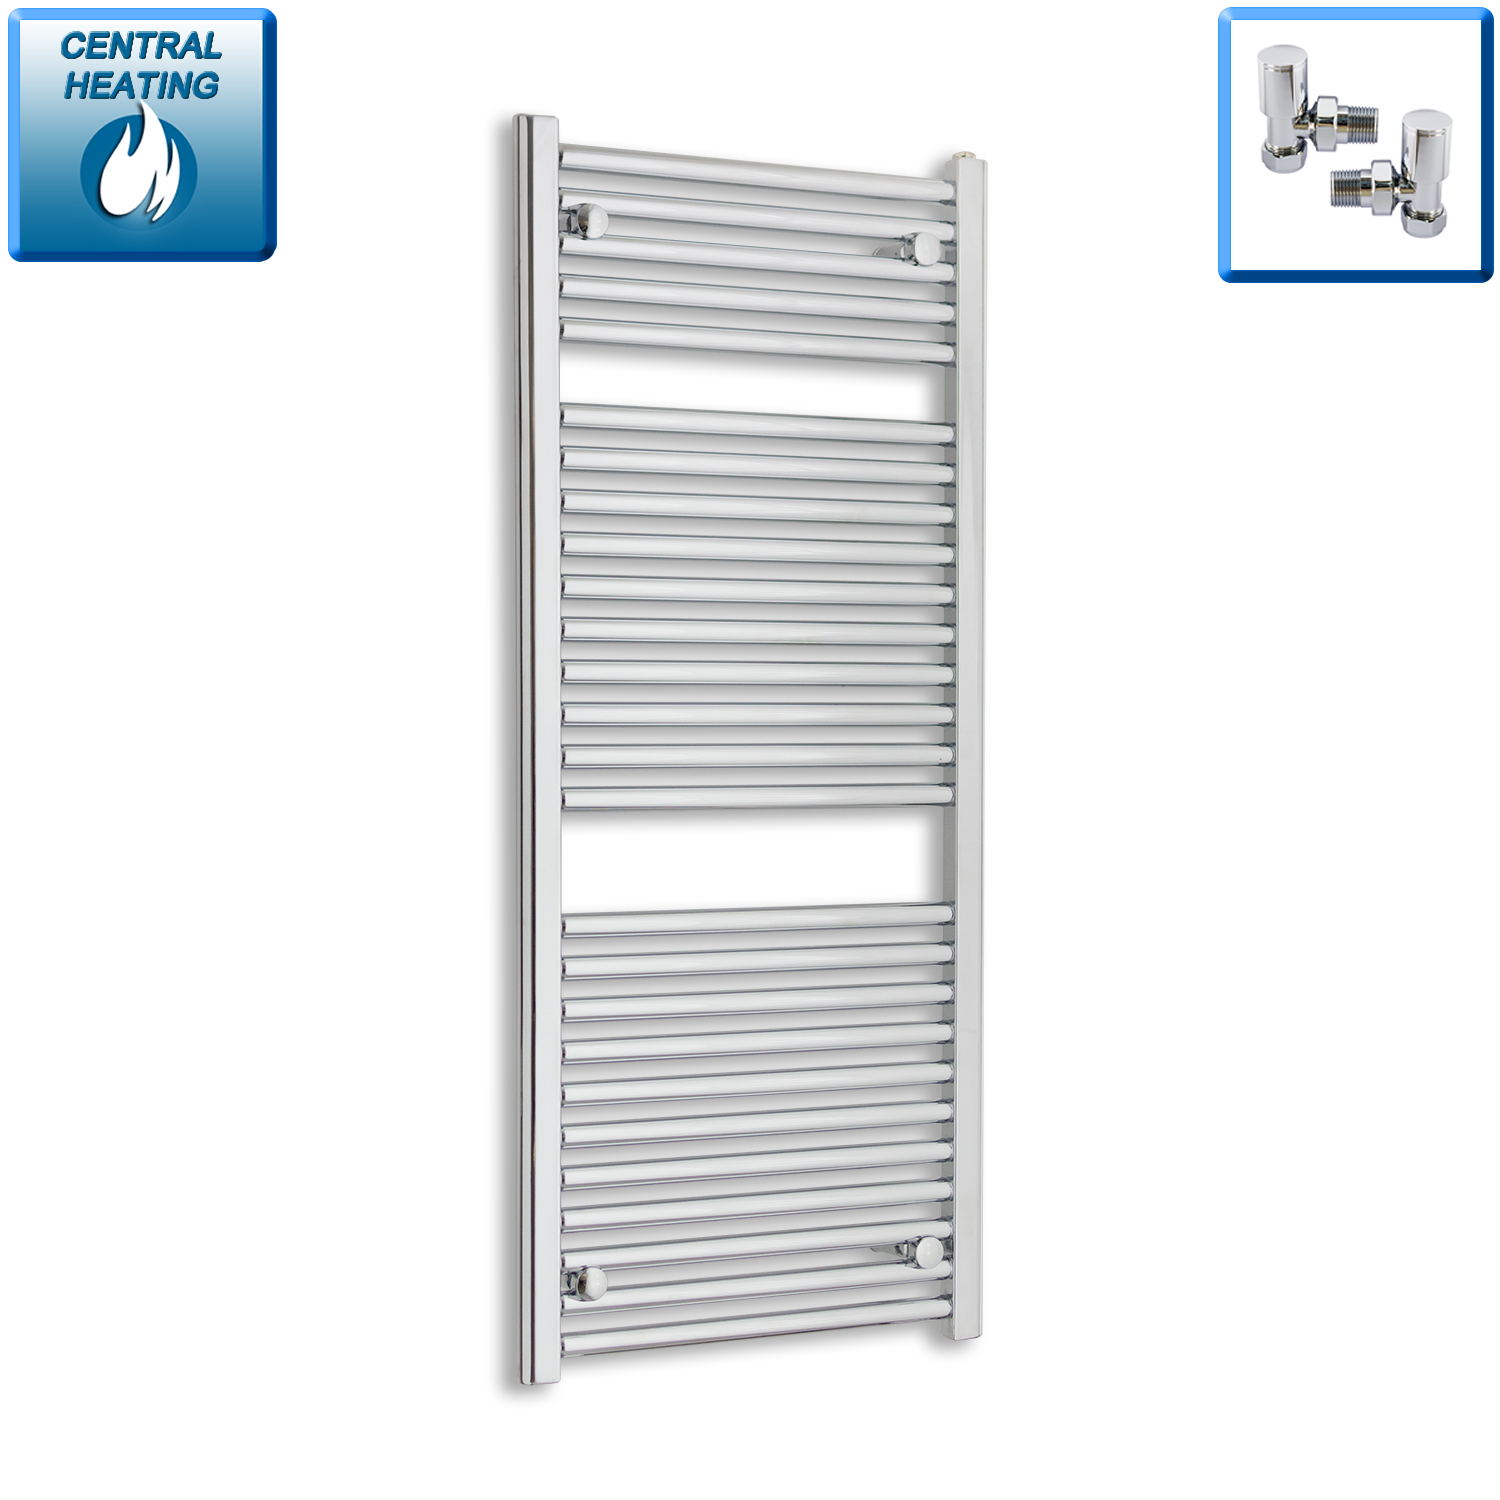 500mm Wide 120mm High Chrome Towel Rail Radiator With Angled Valve